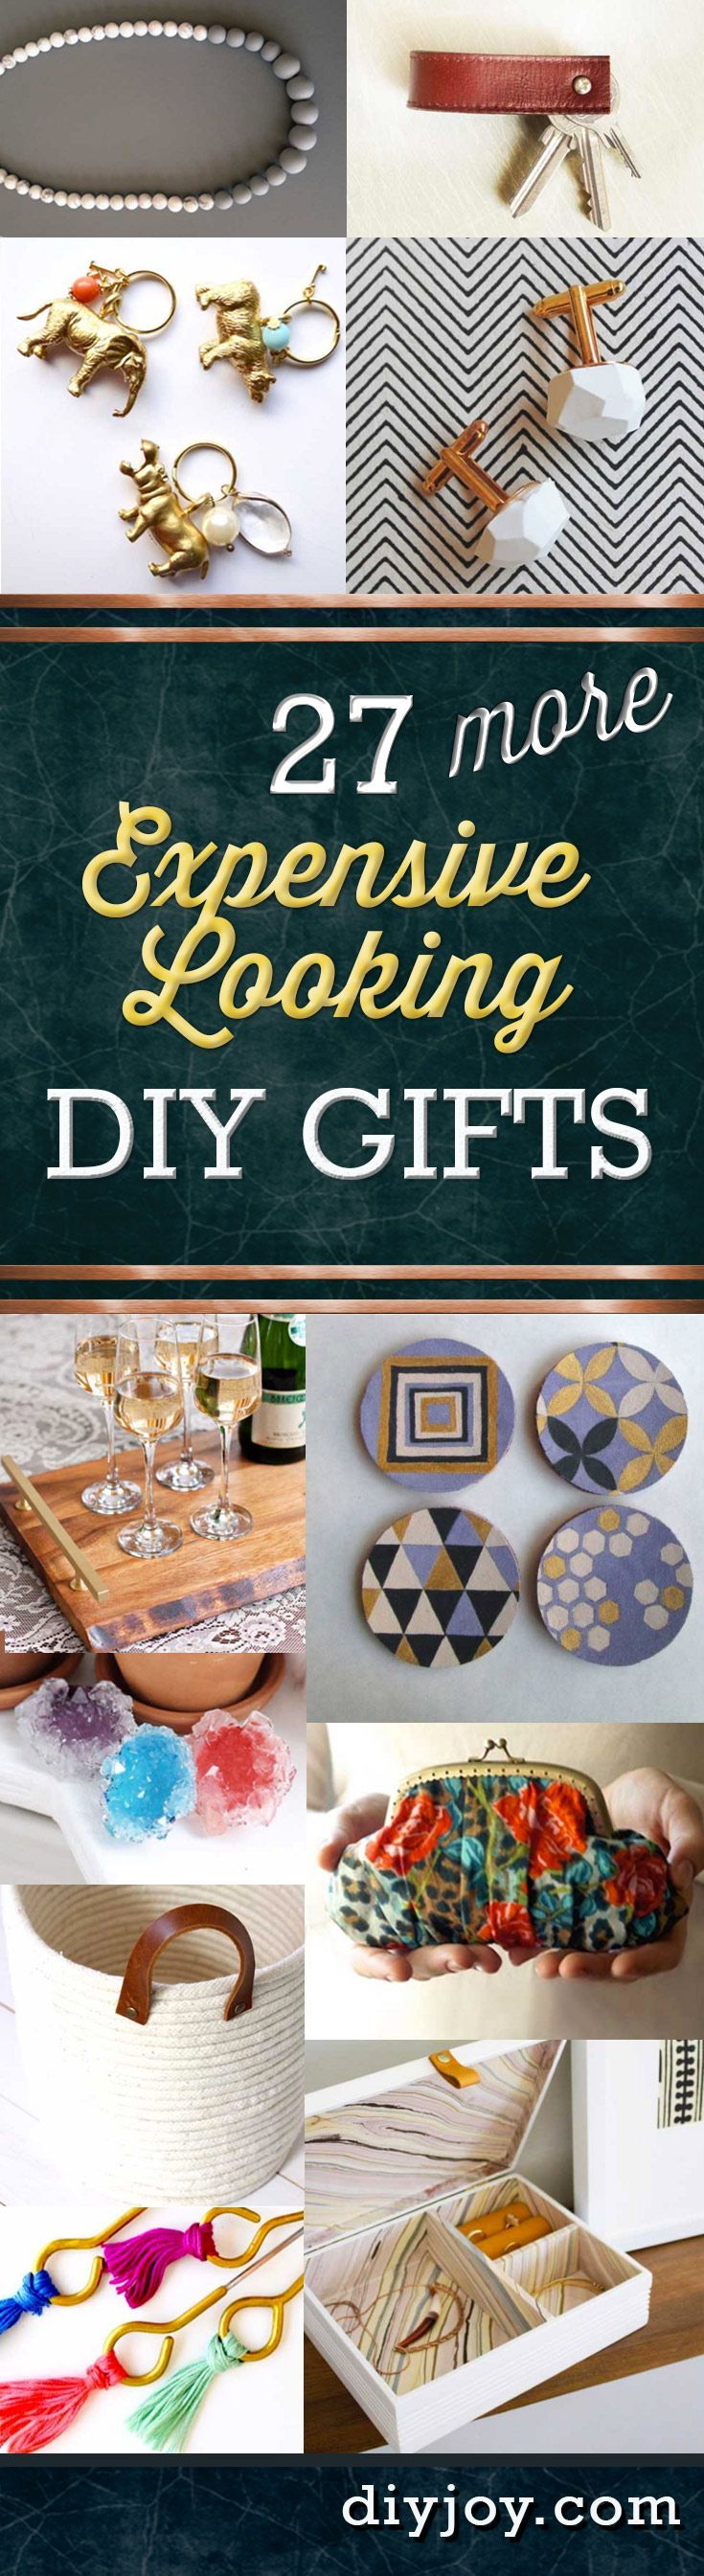 27 More Expensive Looking Diy Gifts Crafts And Gift Ideas For Him Her Family Friends Perfect Birthday Christmas